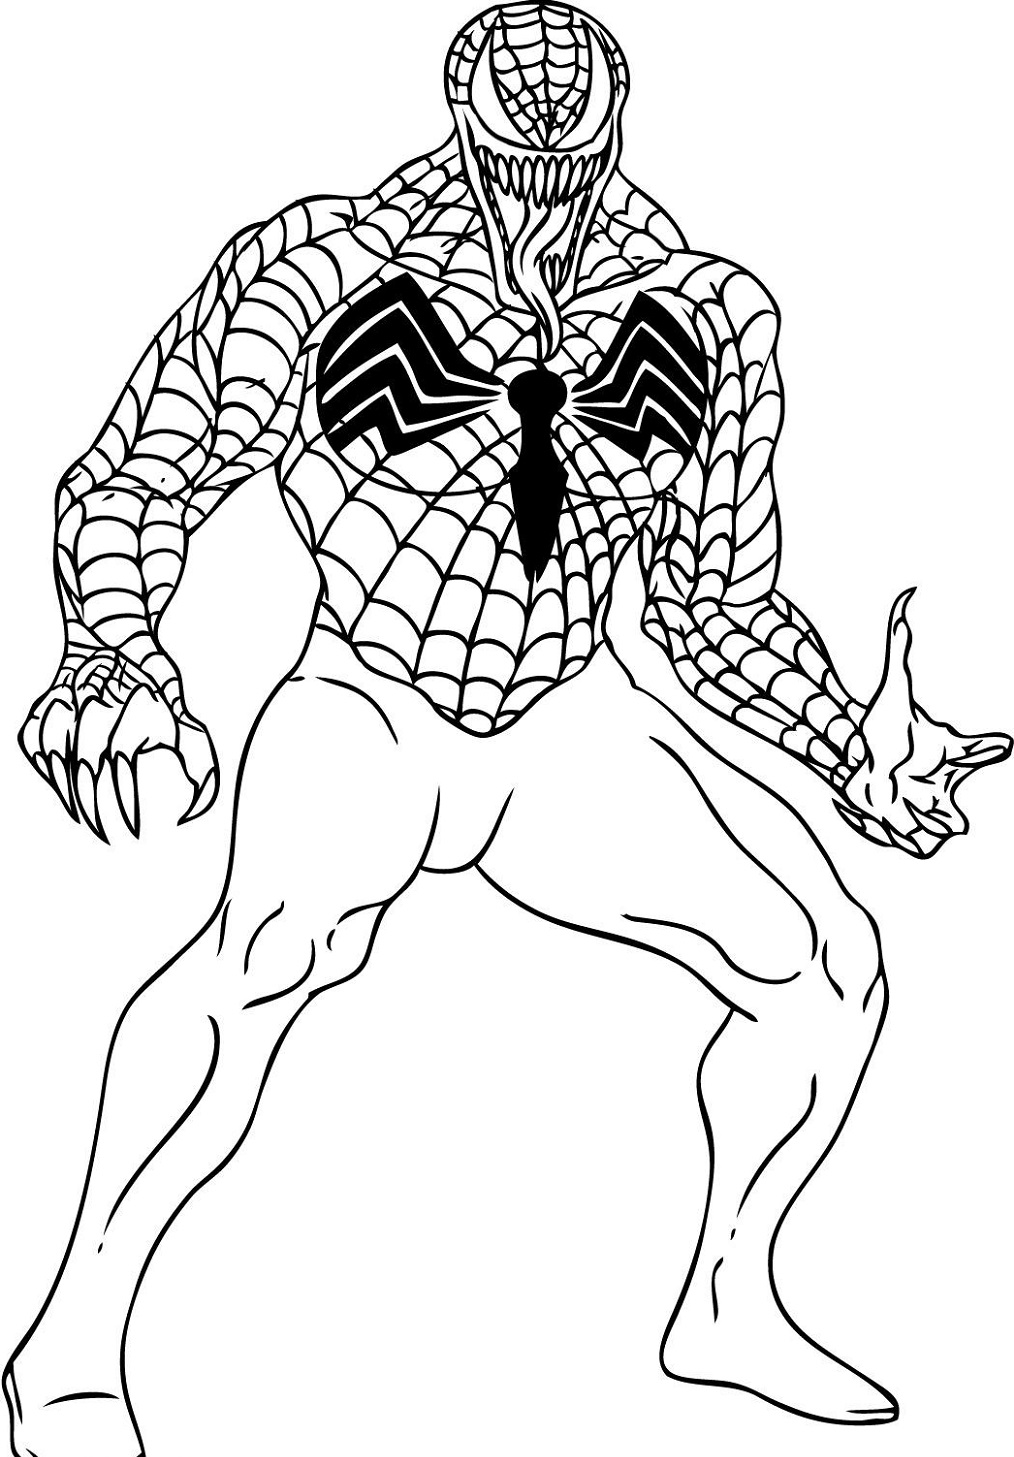 Spiderman Coloring Pages for Boys | Educative Printable